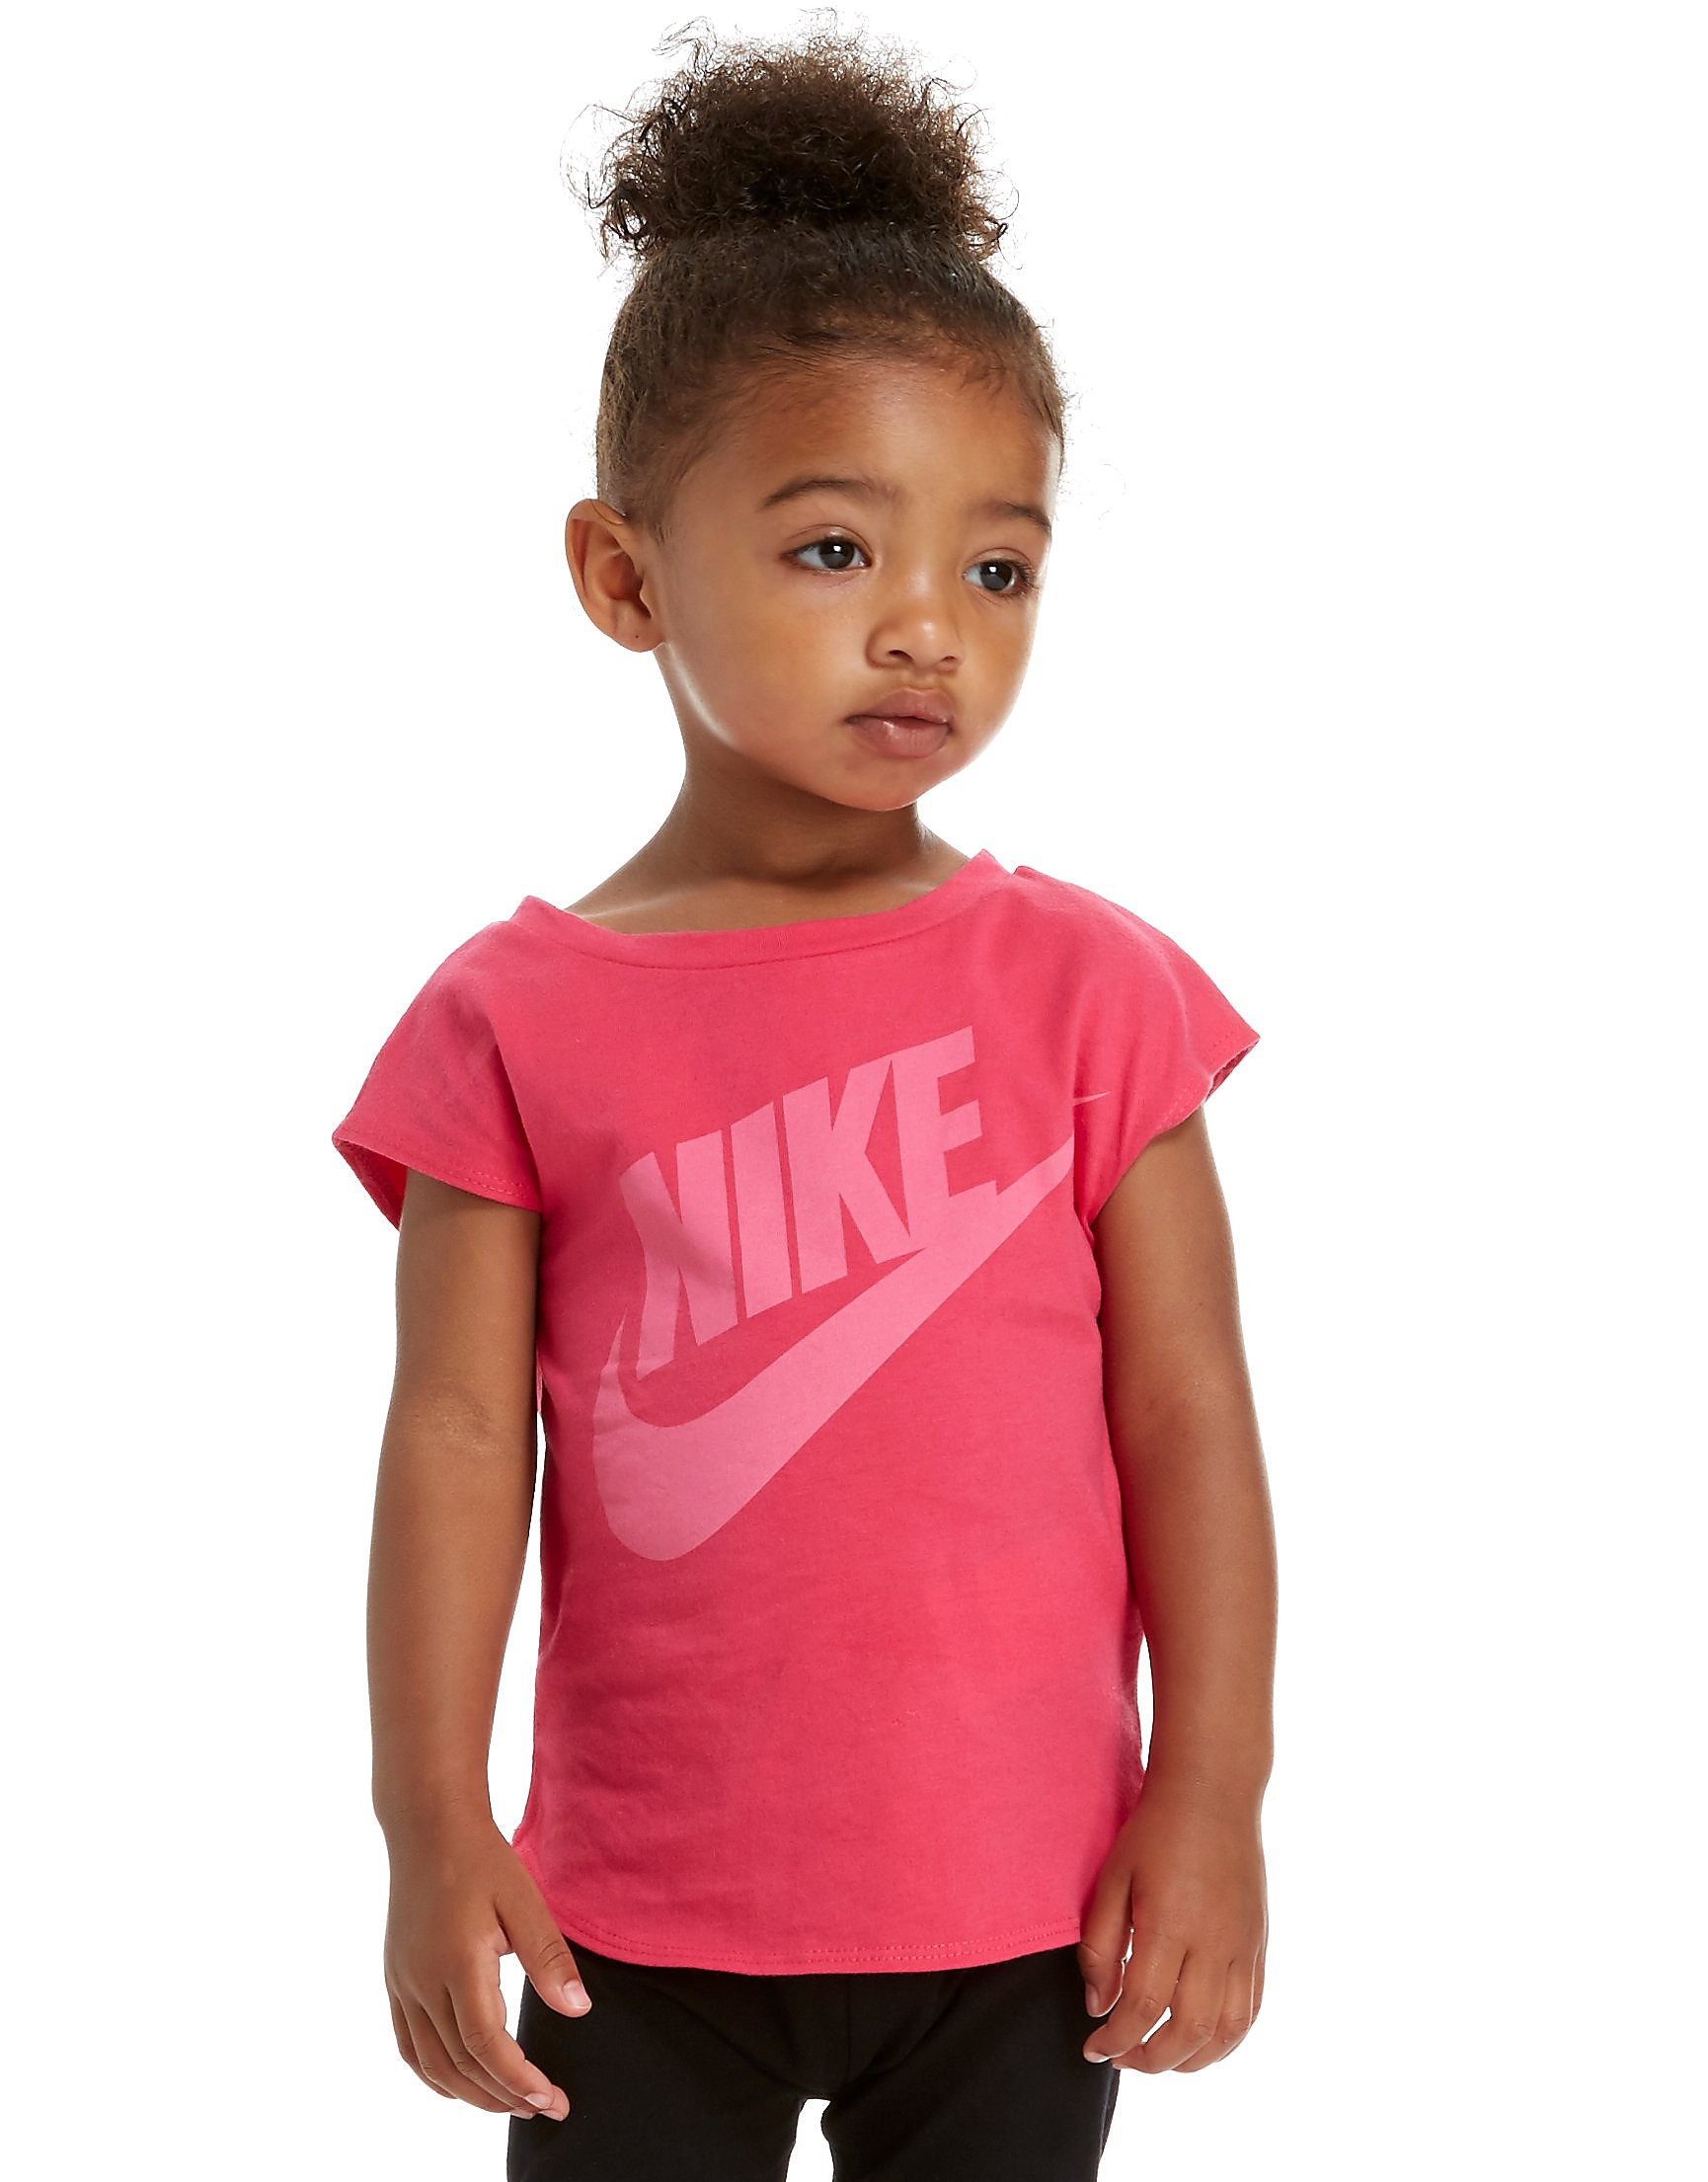 Nike Girls' Futura T-Shirt Infant